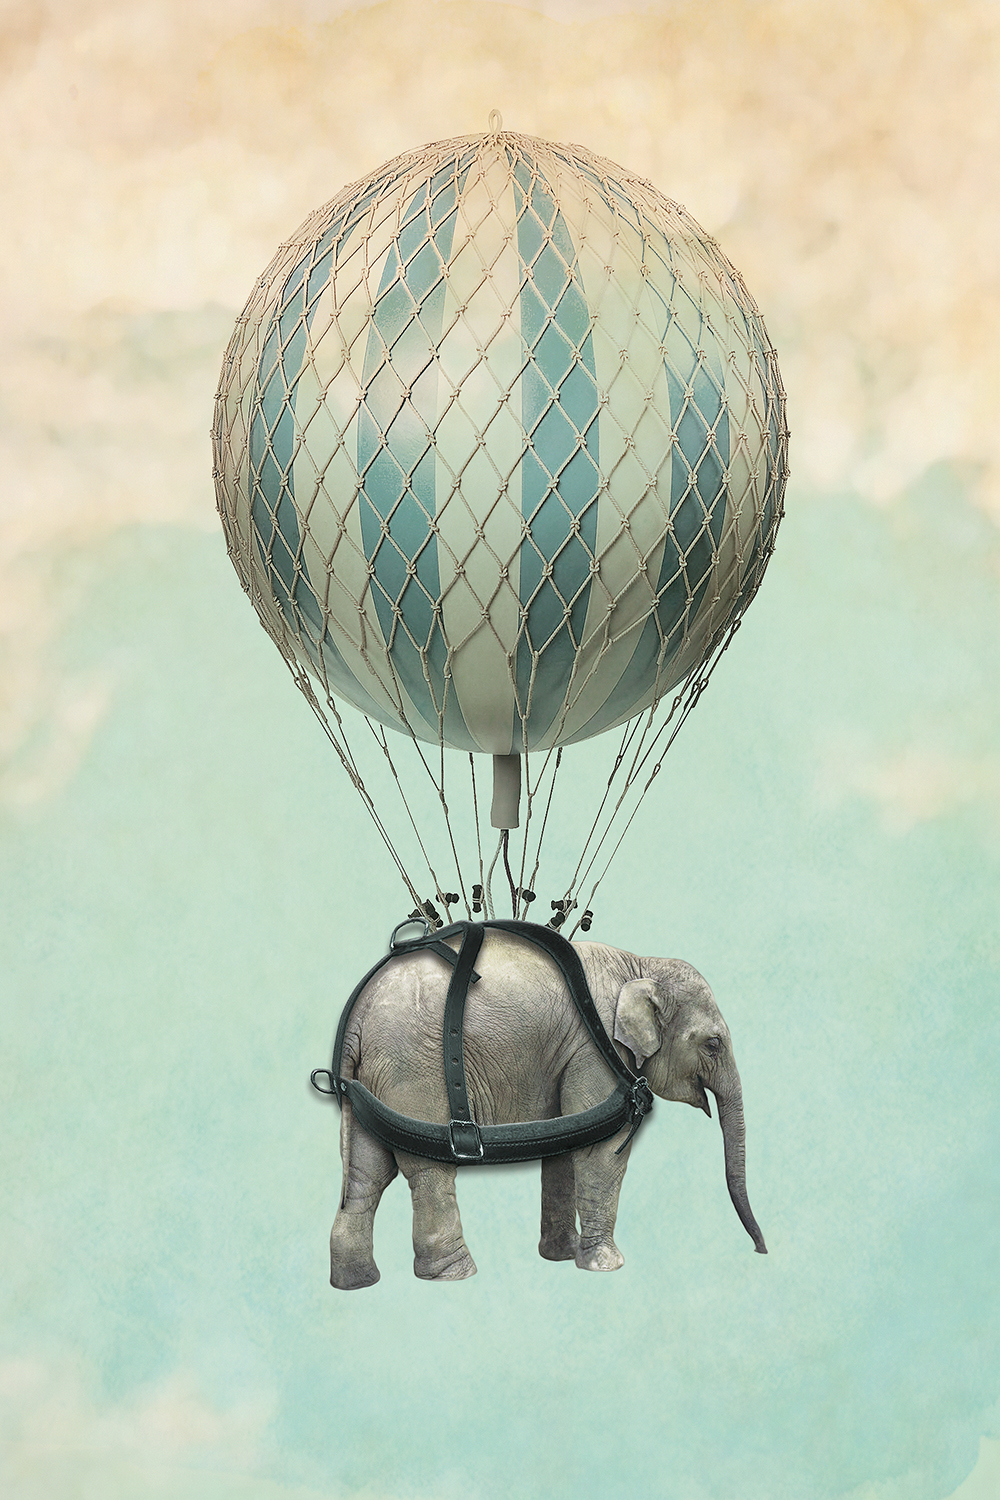 an elephant wearing a harness connected to a large balloon that's floating in the sky